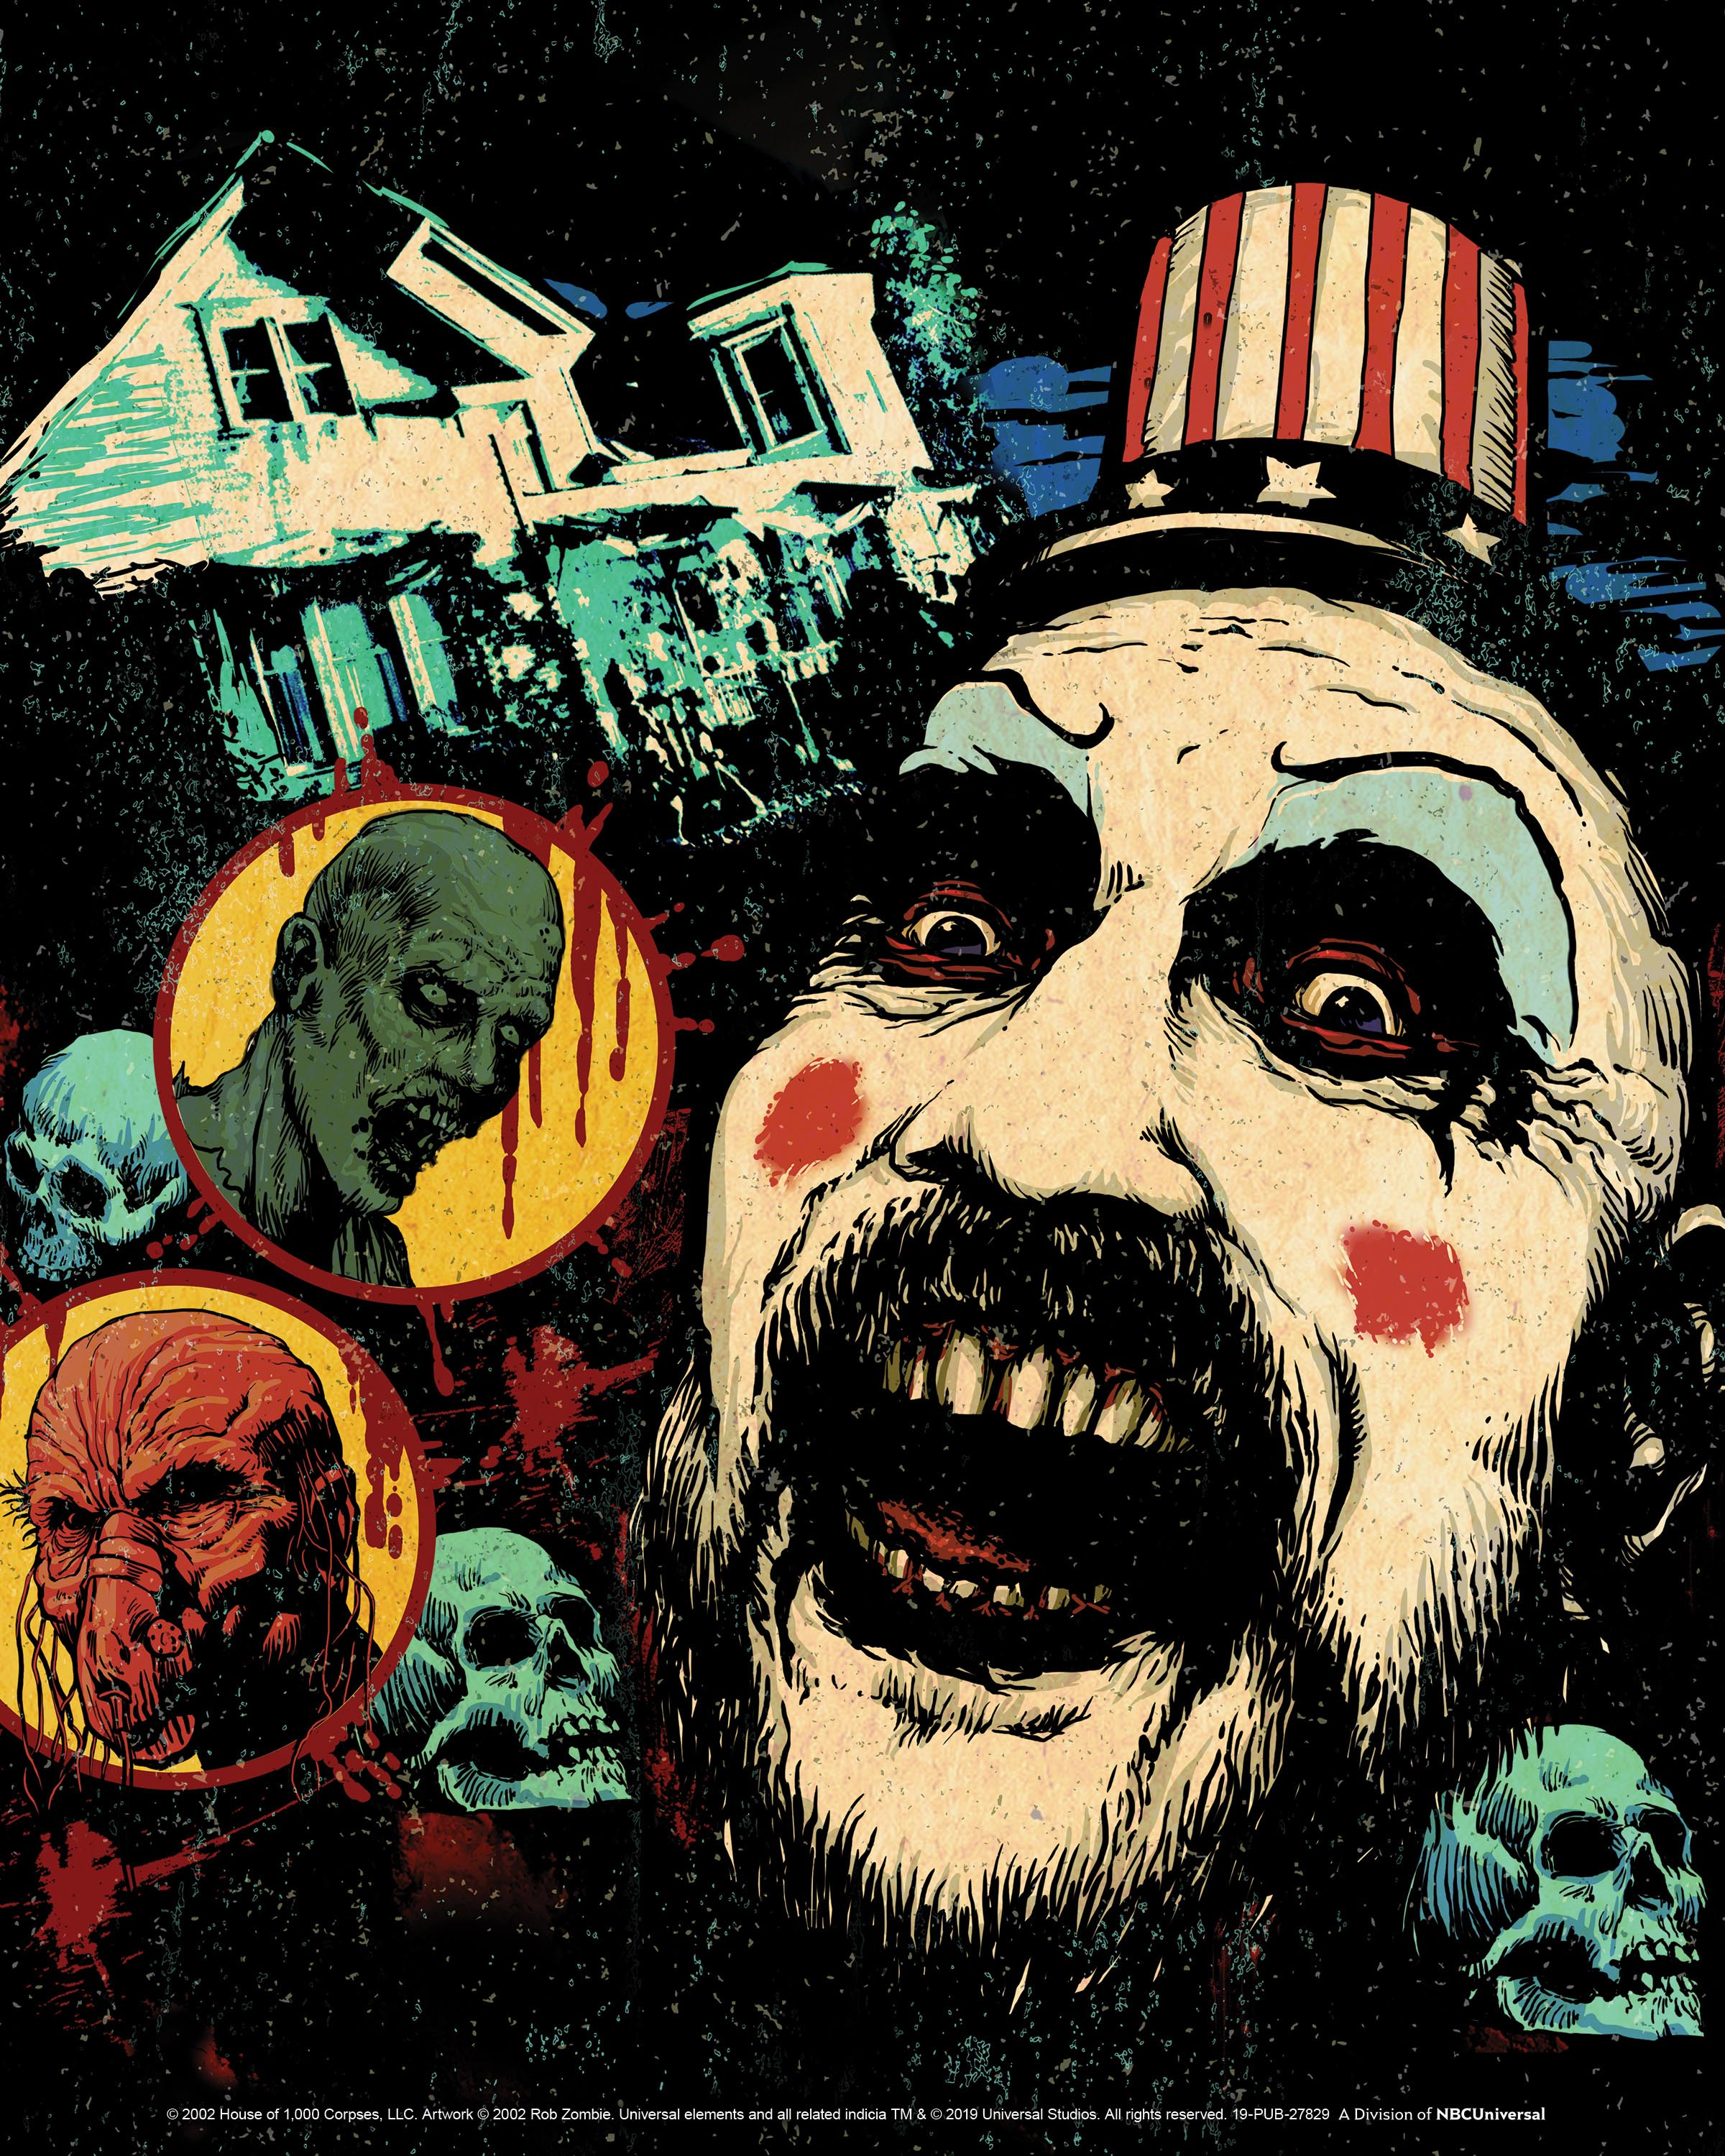 House of 1000 Corpses maze at HHN 2019.jpg